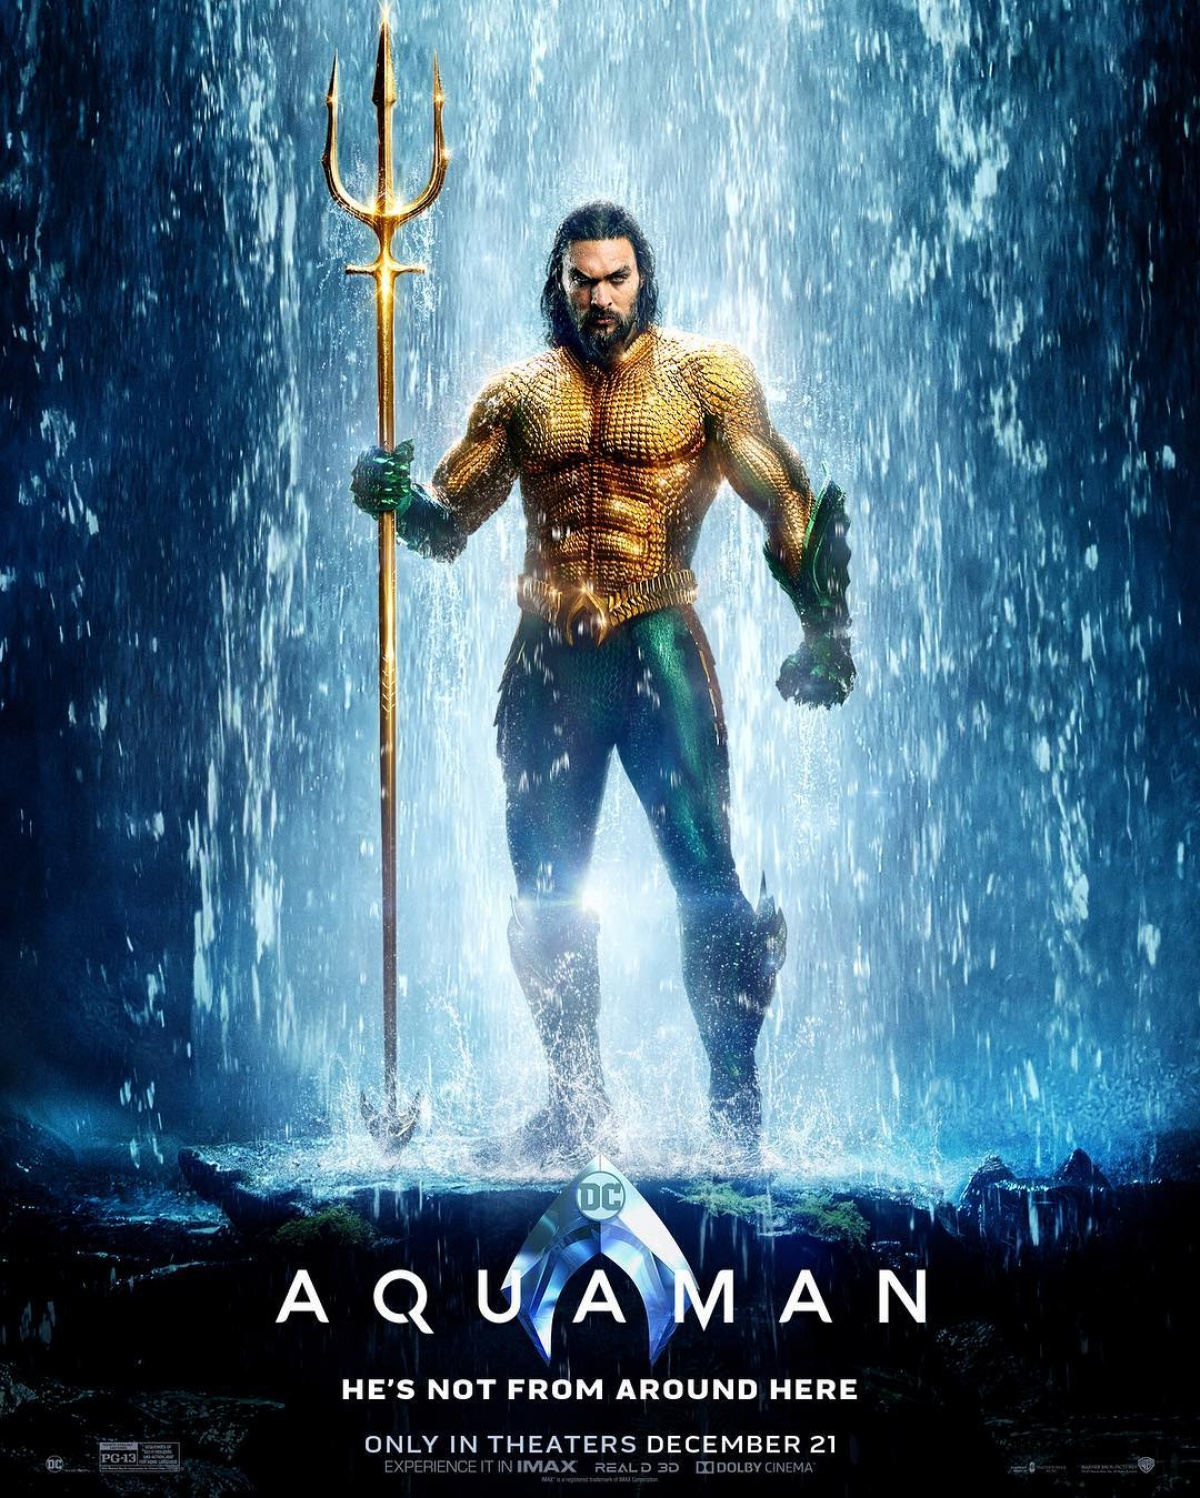 Aquaman movie poster.jpg